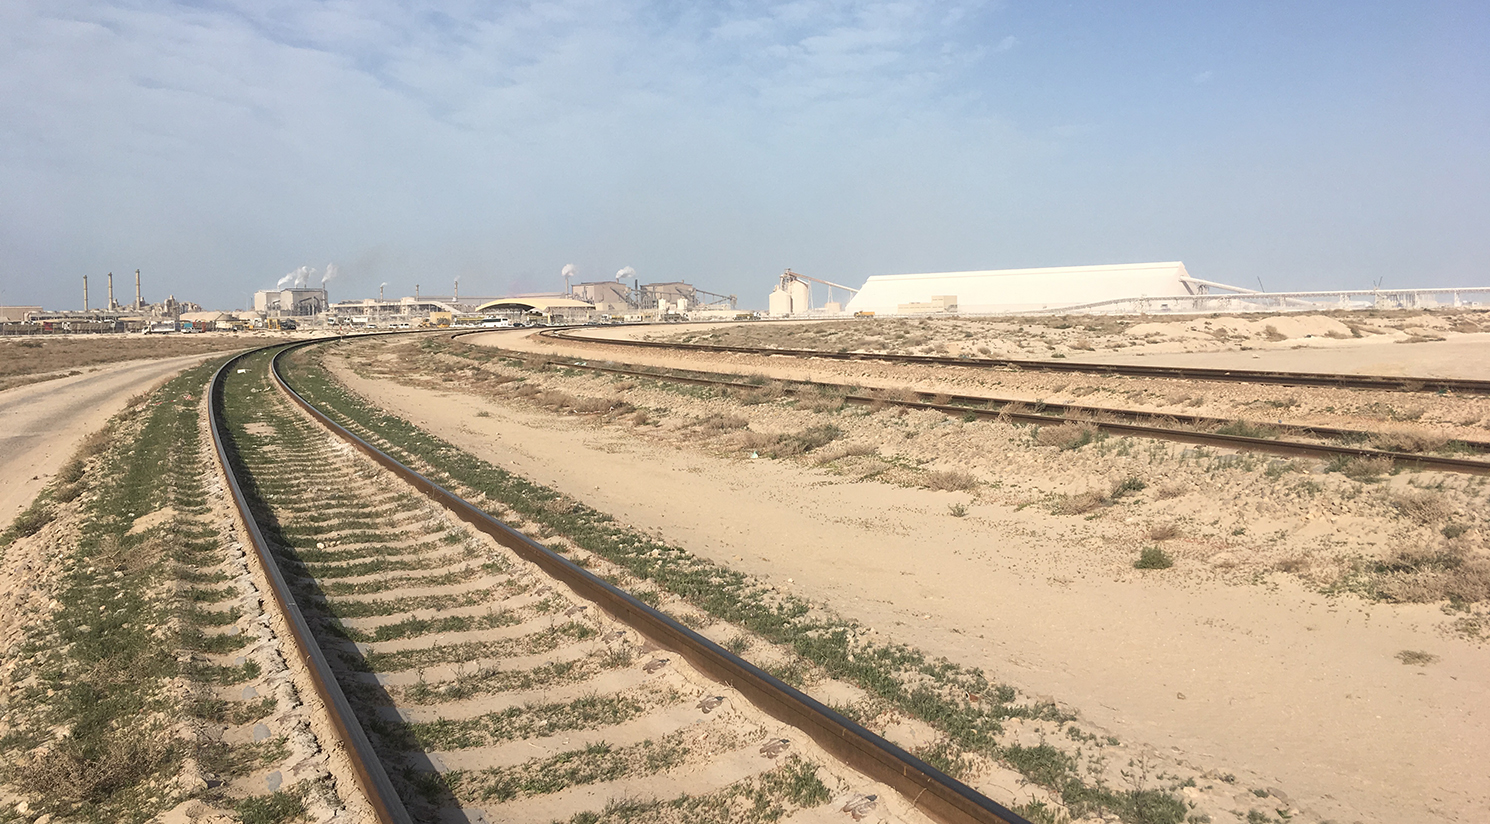 Design of Temporary Tracks at Ras Al Khair, KSA